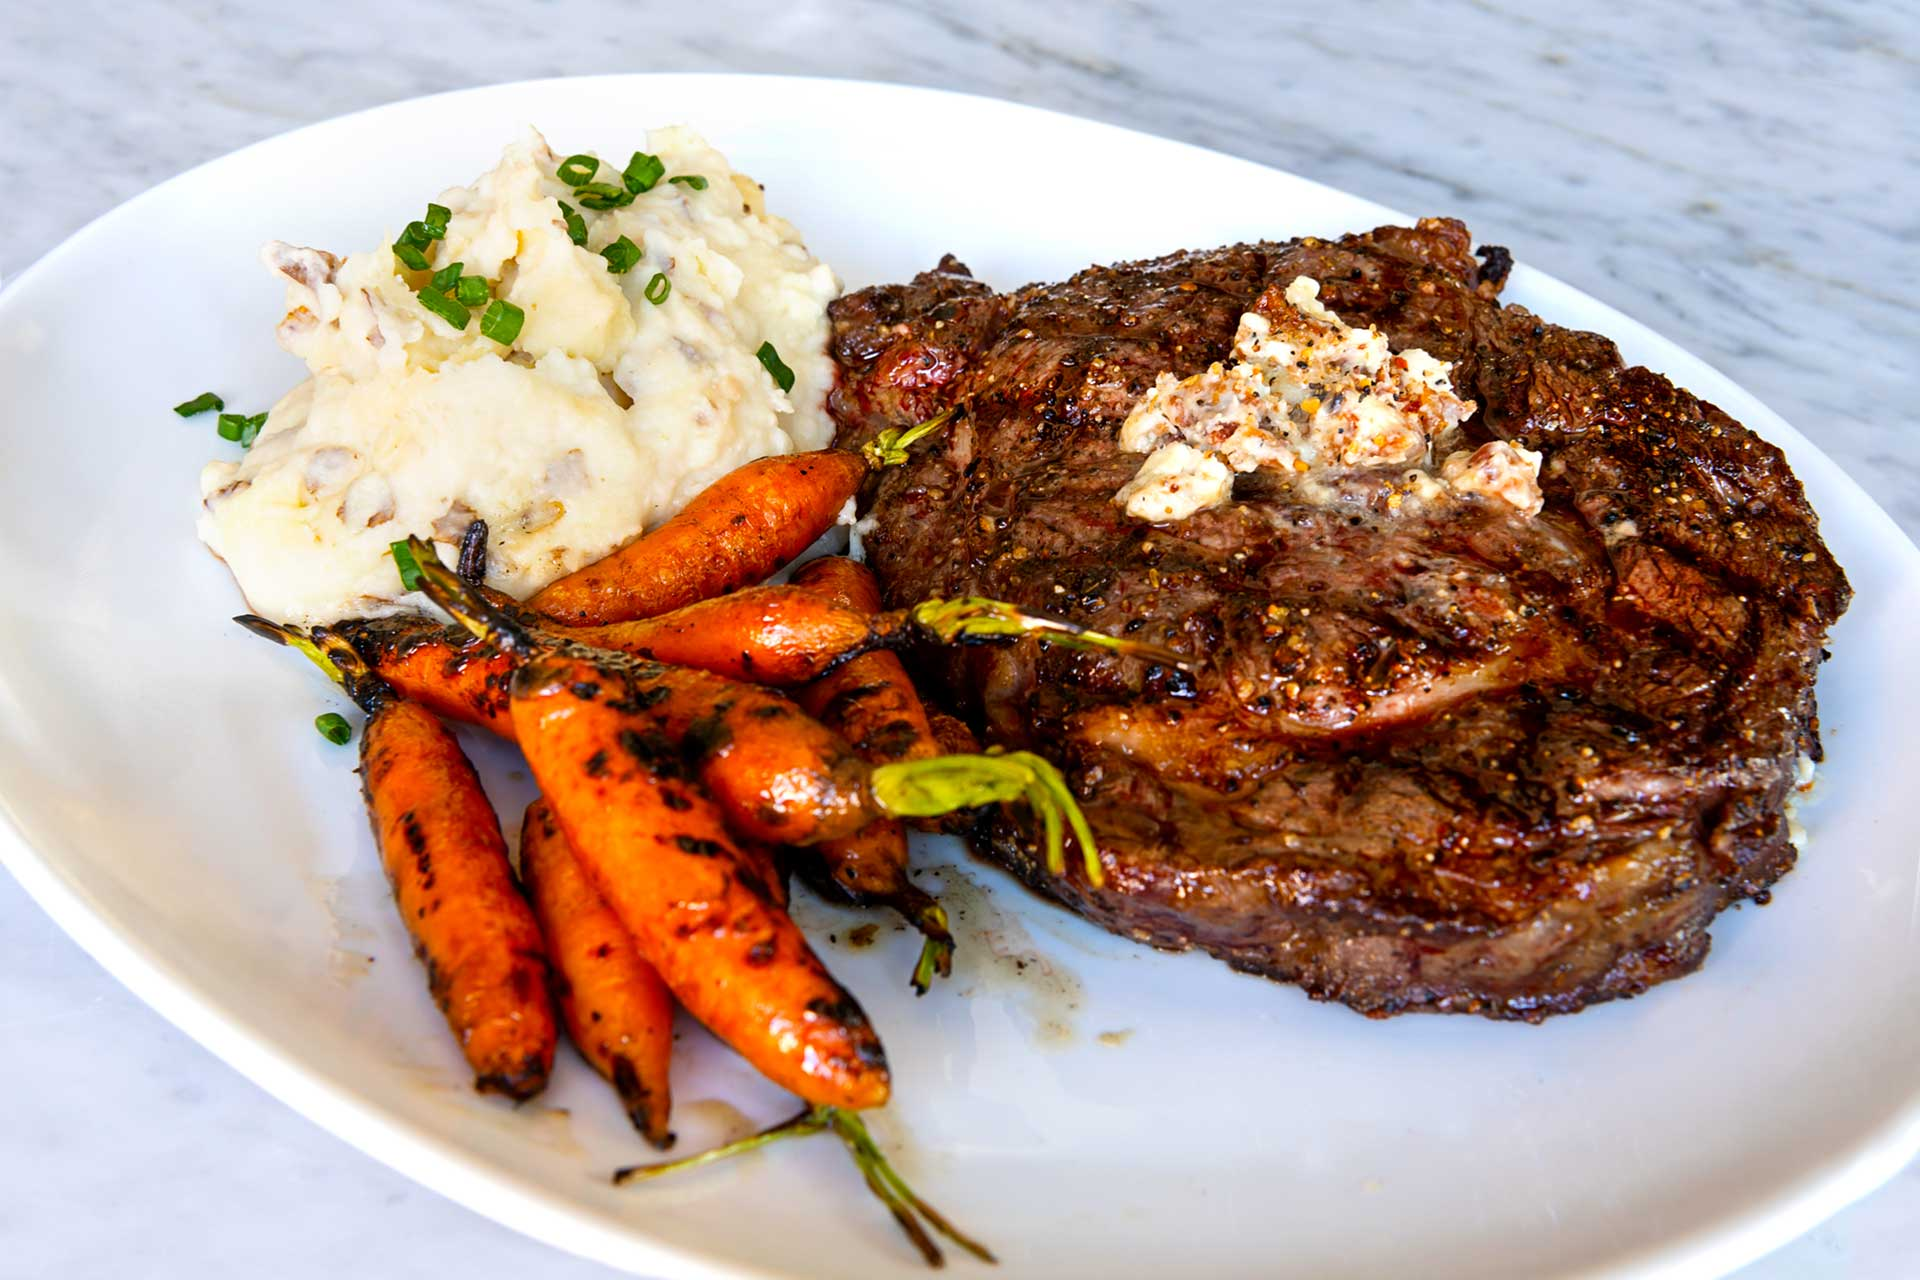 2020 Menu - Steak, Carrots, and Potatoes